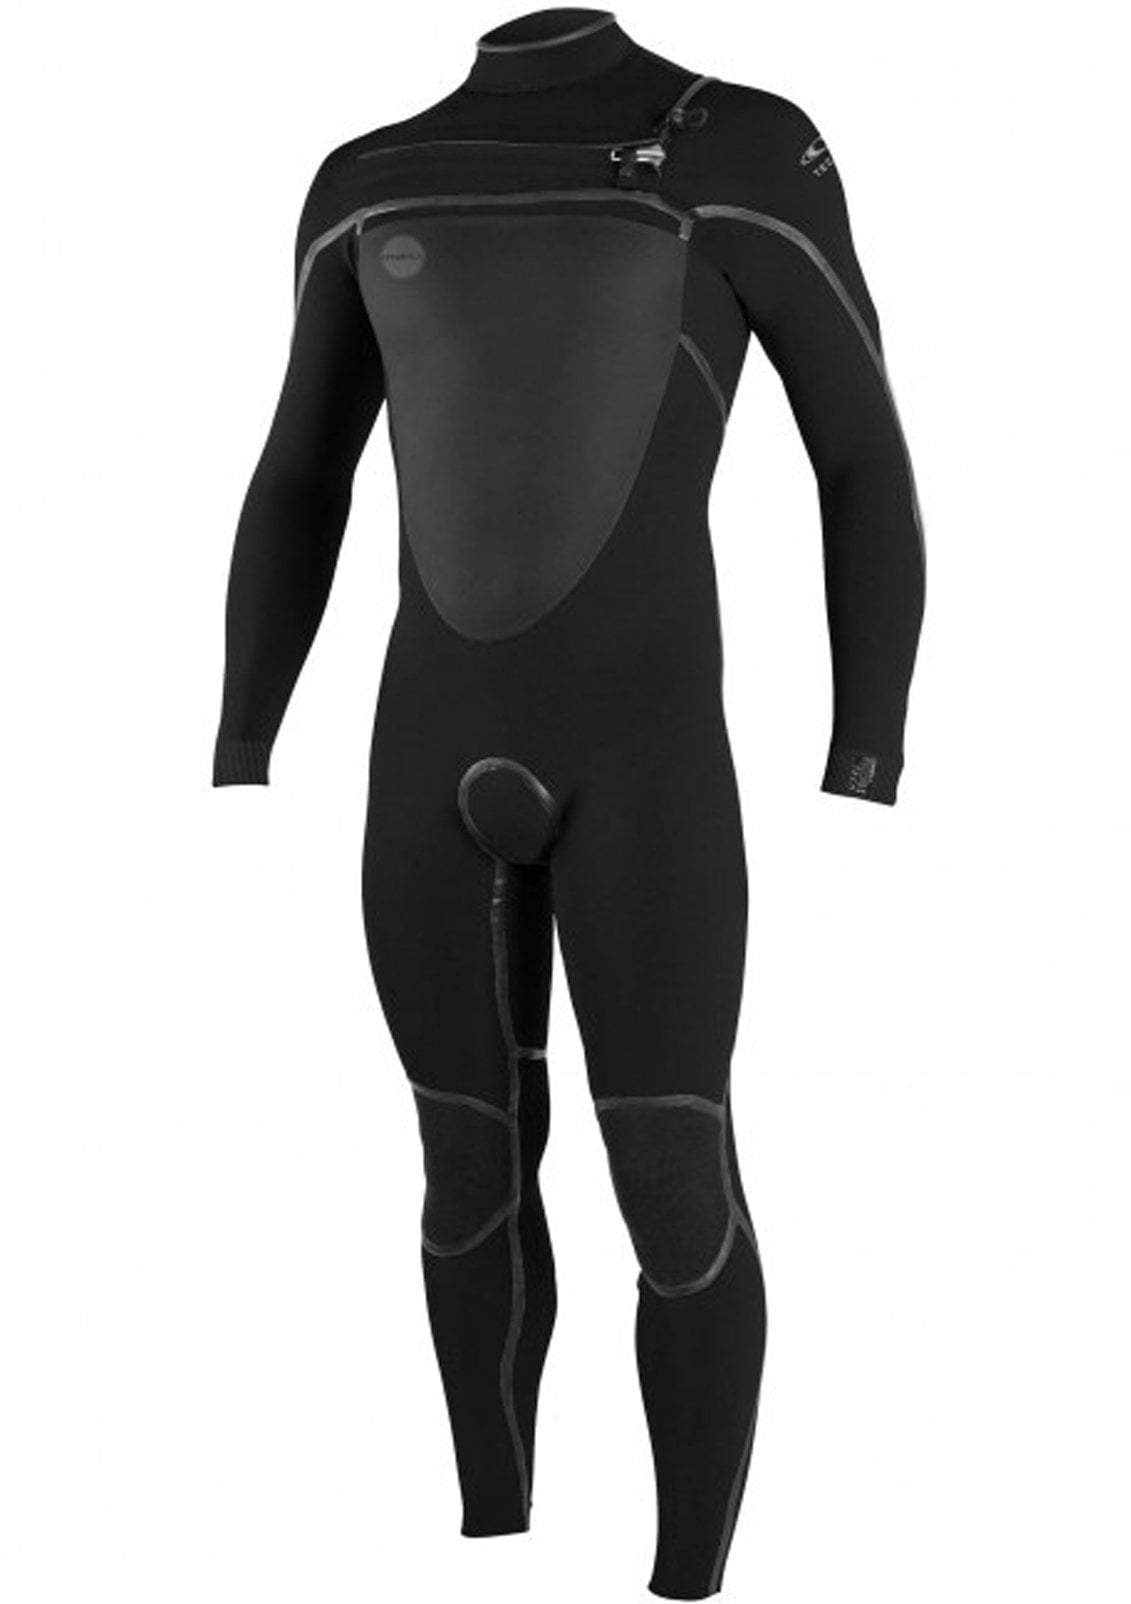 O'Neill Men's Psycho Tech 4/3 Full Wetsuit